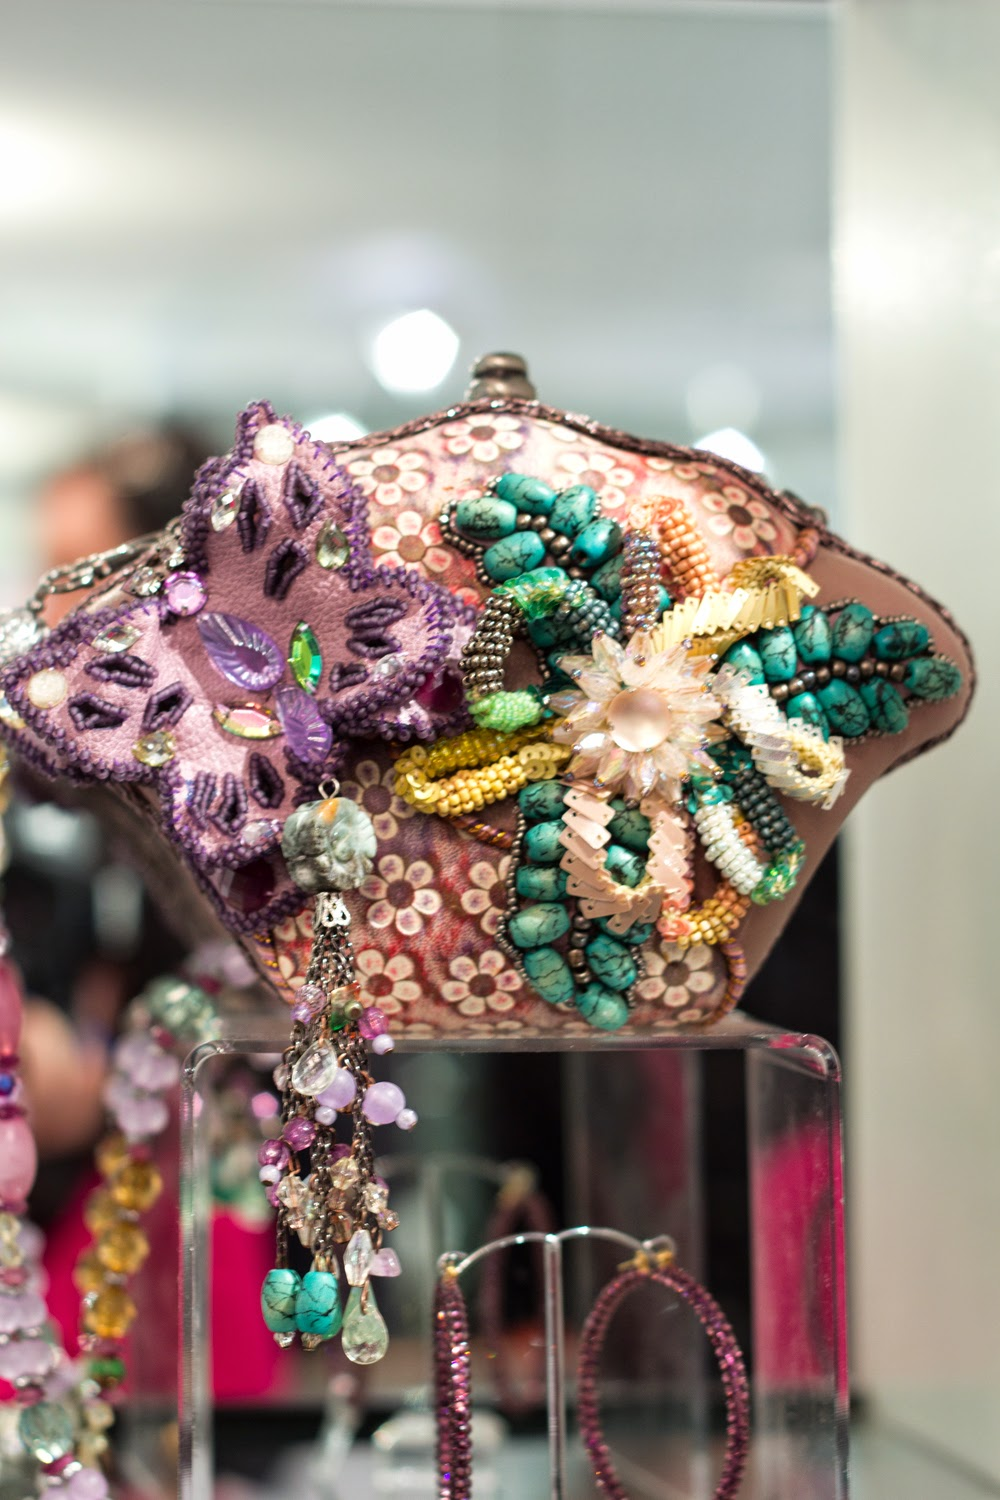 artemis-pop-up-jewellery-store-in-yorkville, statement-artistic-clutch-purpse